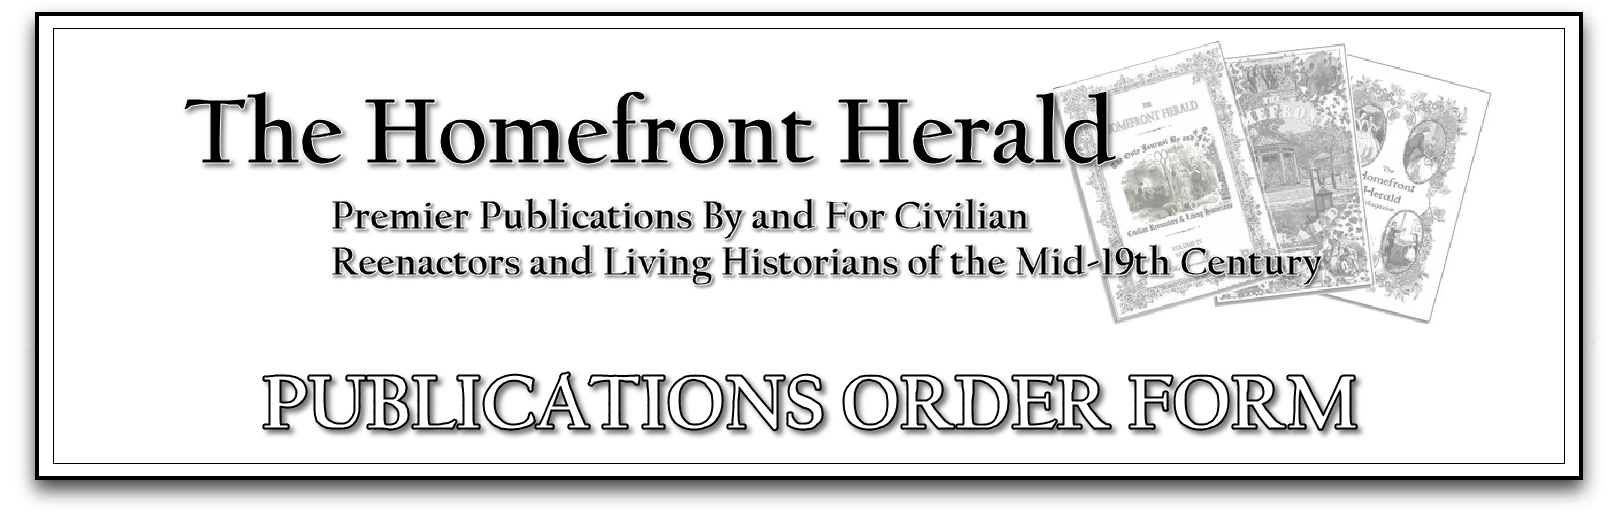 HH Publications Order Form WORKING